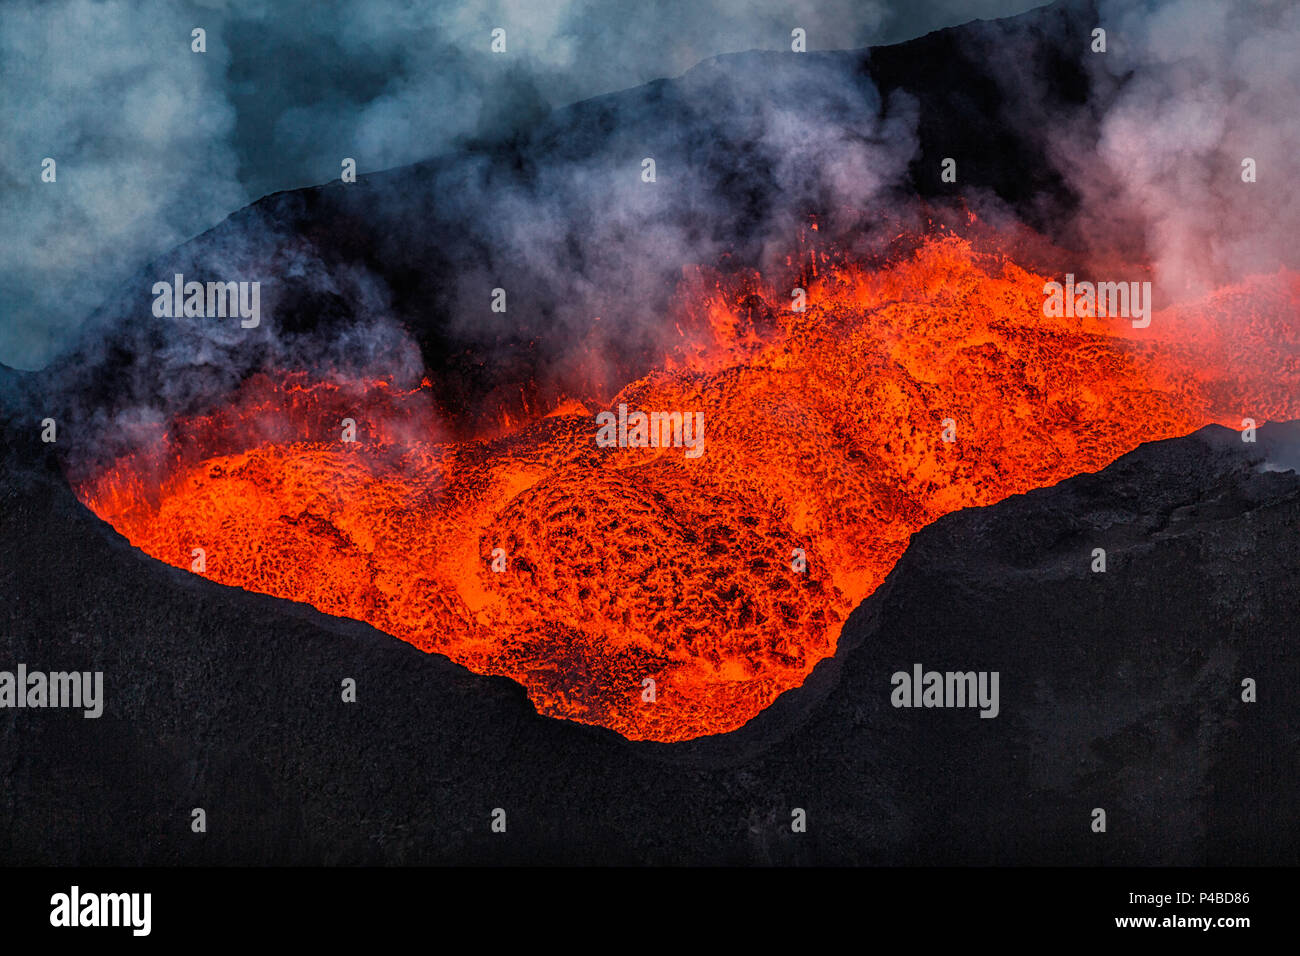 Aerial view of lava flow. August 29, 2014 a fissure eruption started in Holuhraun at the northern end of a magma intrusion, which had moved progressively north, from the Bardarbunga volcano. Bardarbunga is a stratovolcano located under Vatnajokull, Iceland's most extensive glacier. Picture Date: October 30, 2014 - Stock Image